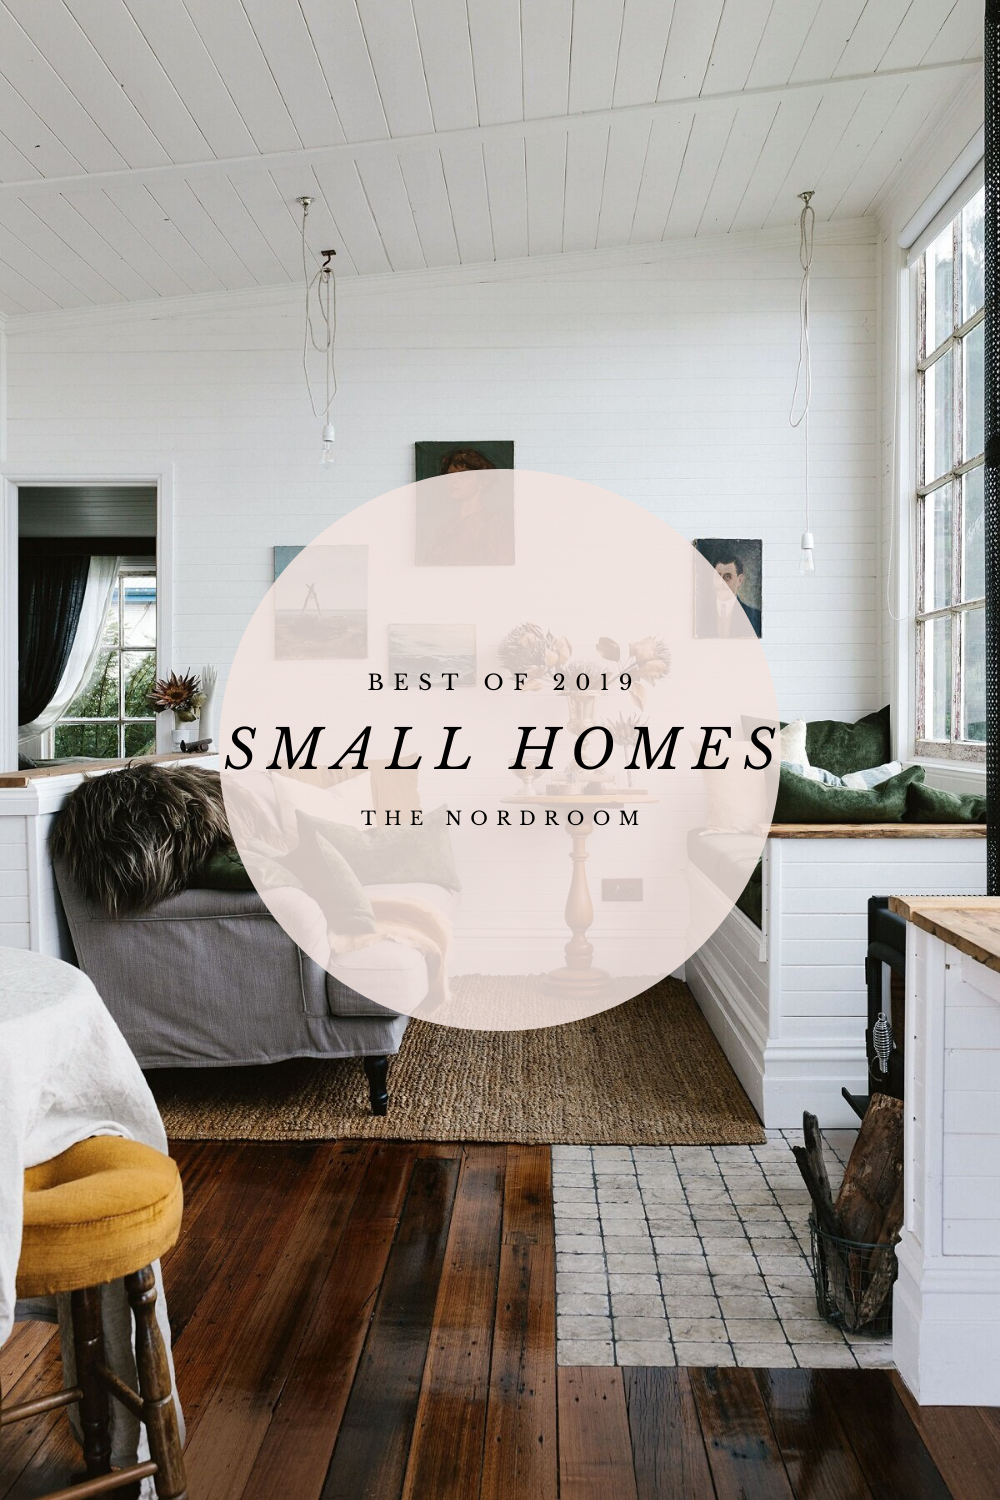 Best of 2019: Small Homes